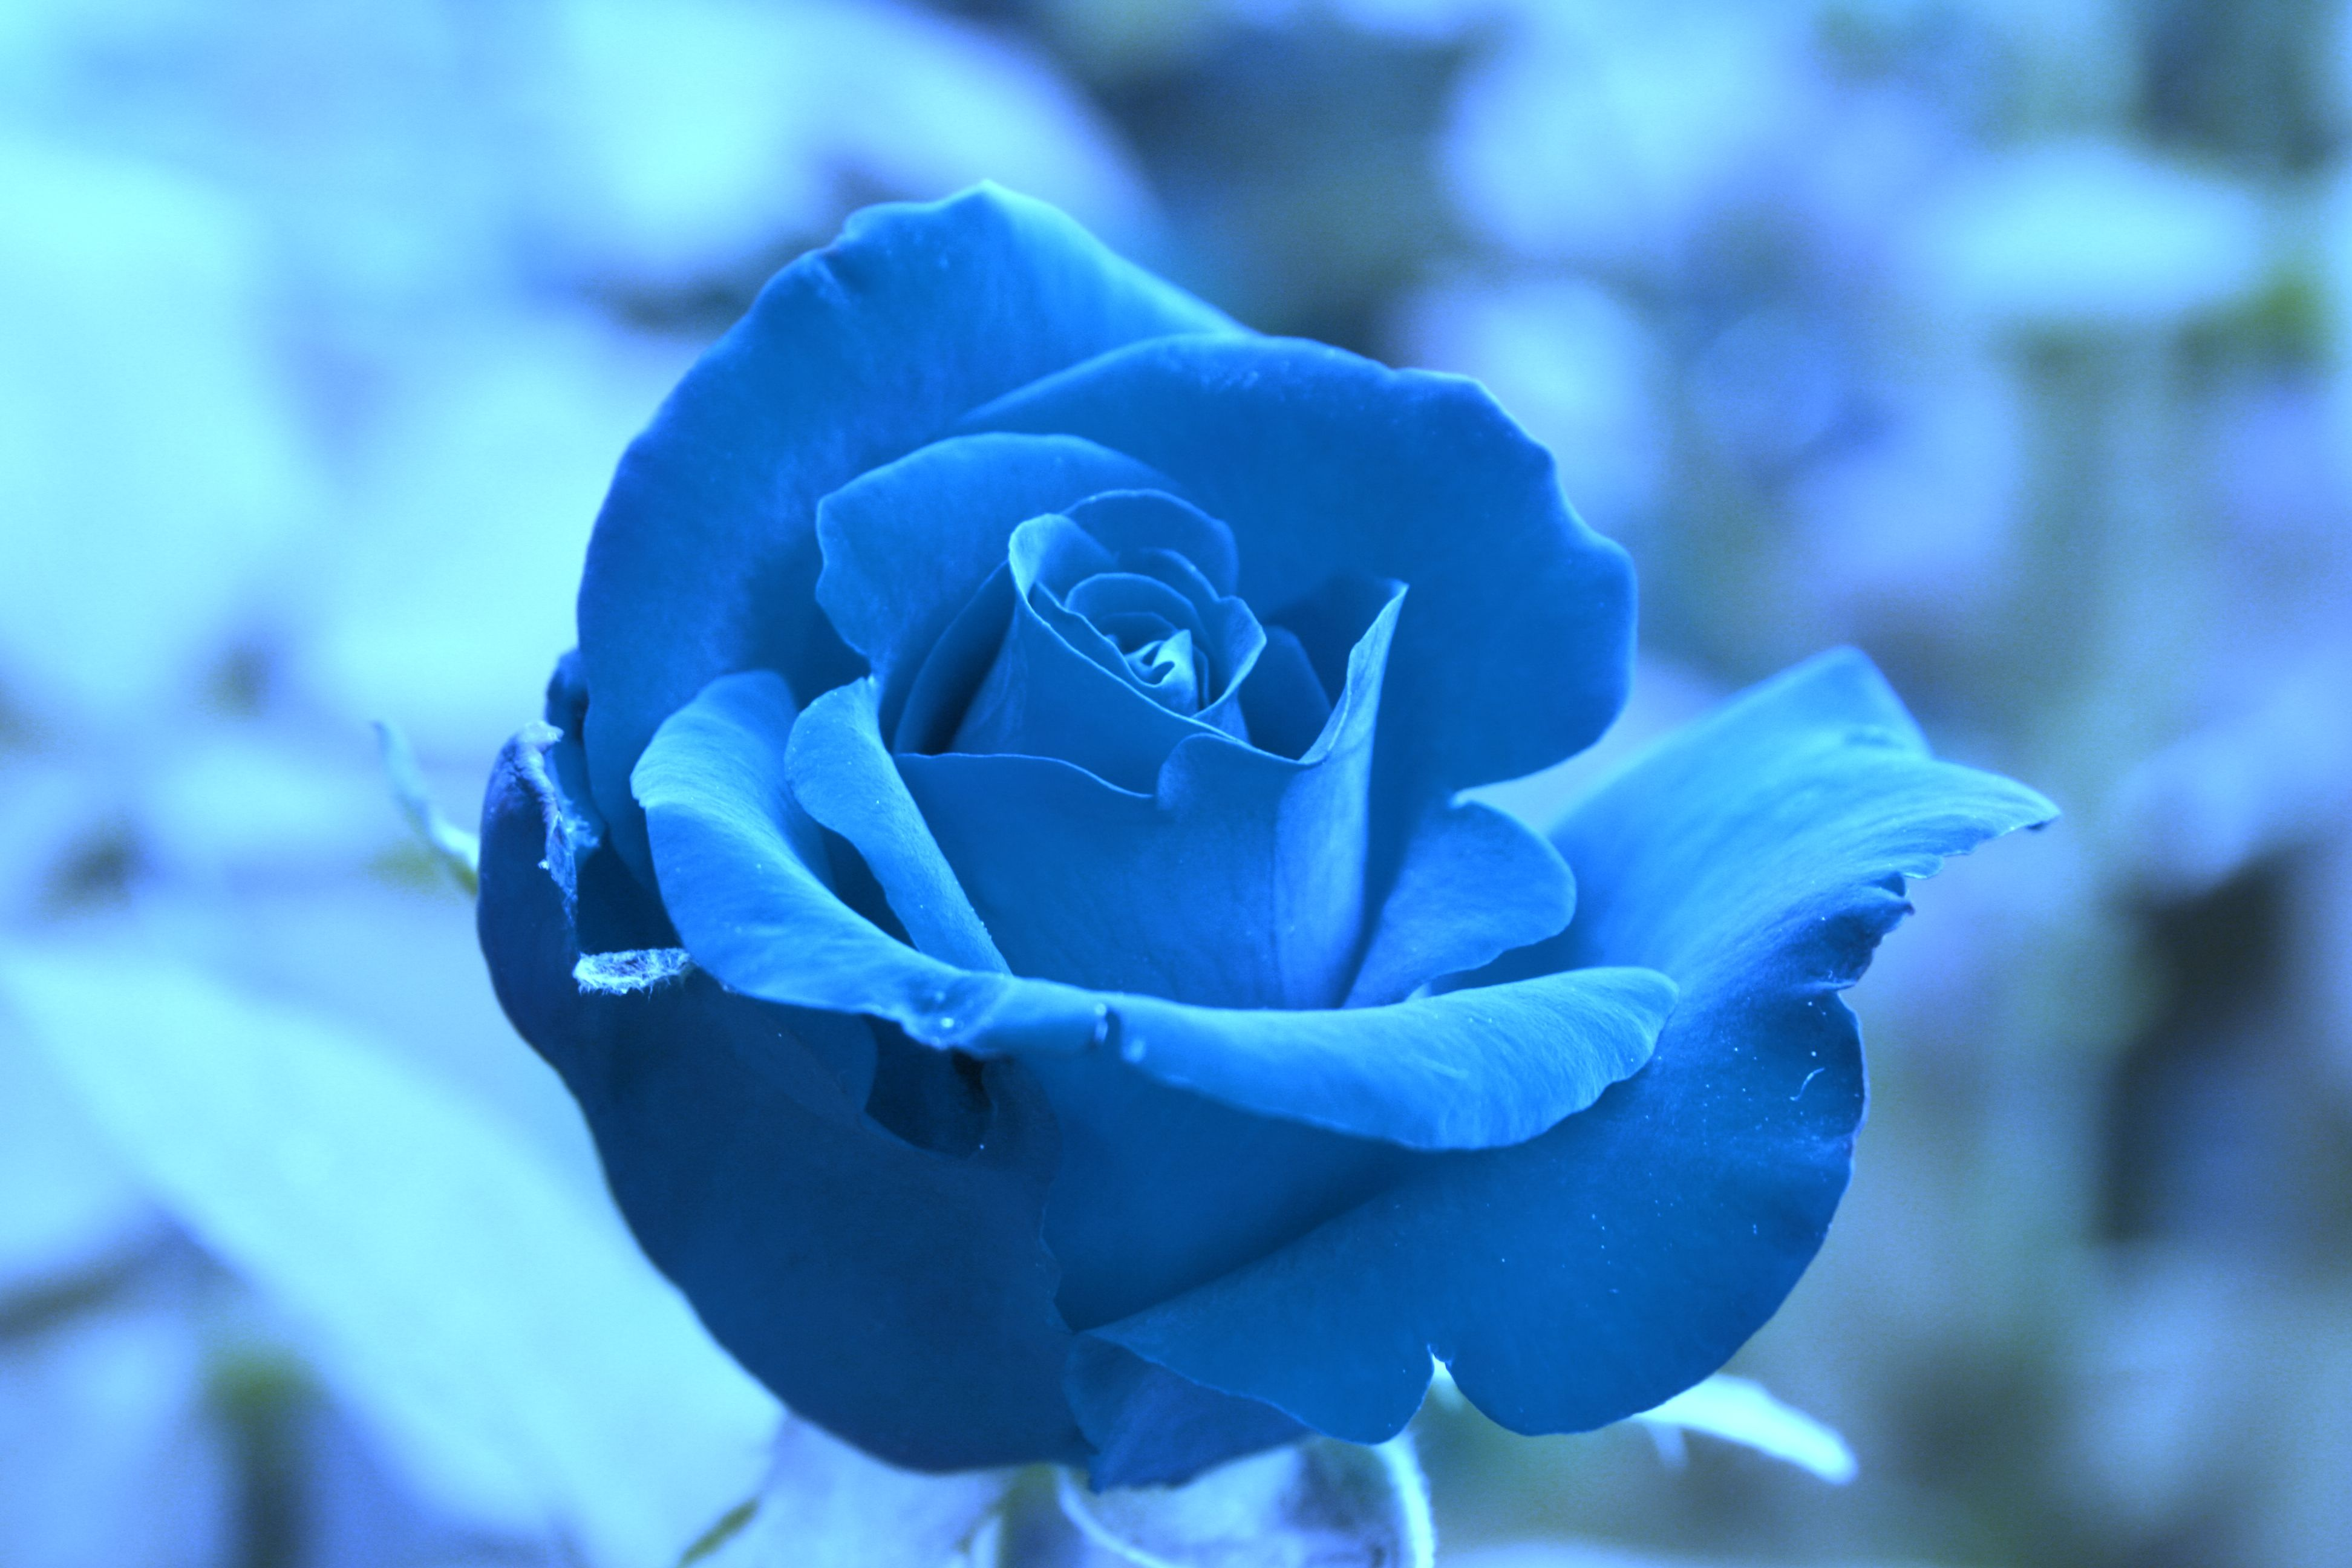 Beautiful Blue Roses Blue rose ♥, beautiful, blue